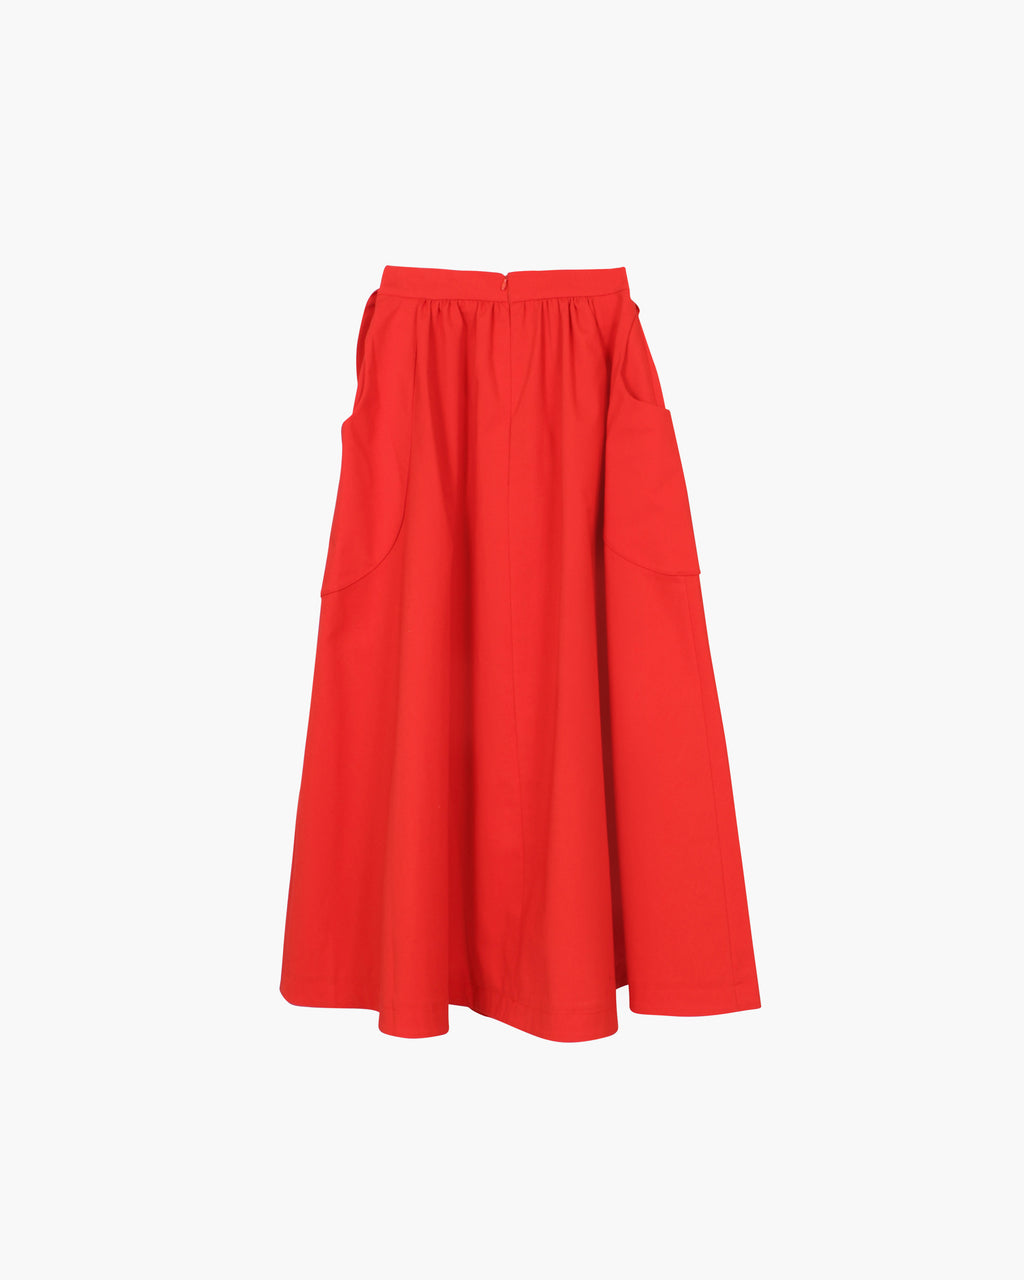 Daisy Skirt Cotton Red